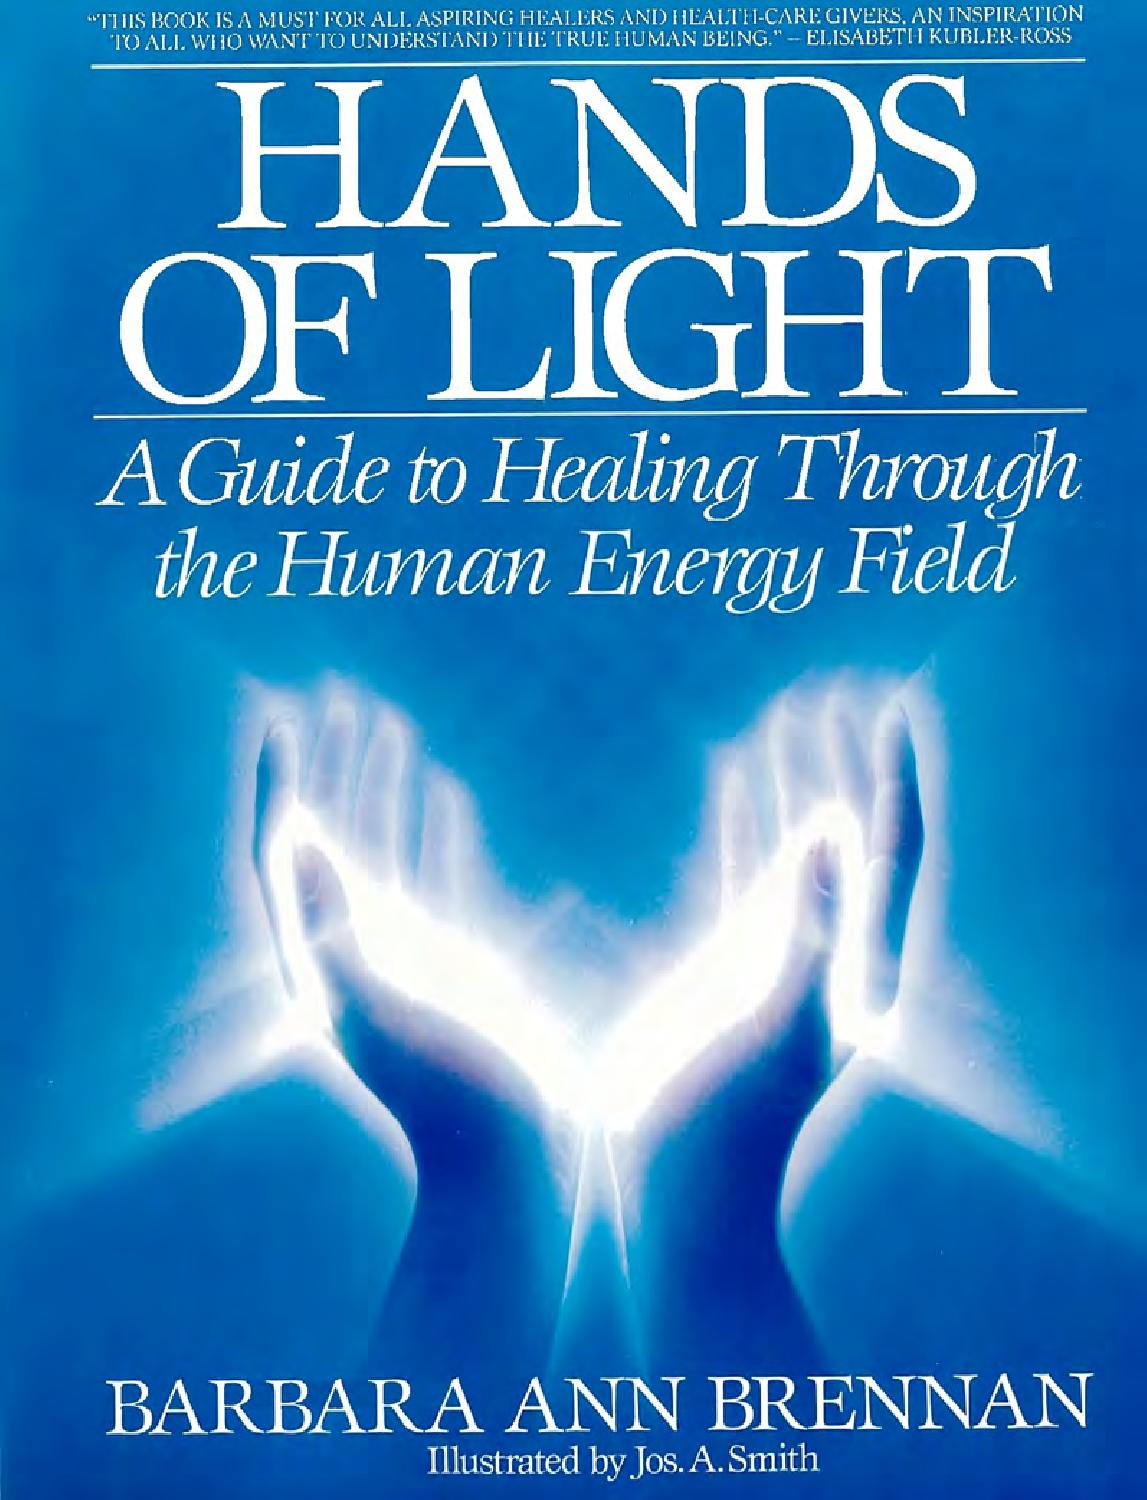 Barbara Brenna Hands Of Light a guide to heal by Hakeem Jalees Ahmed ...